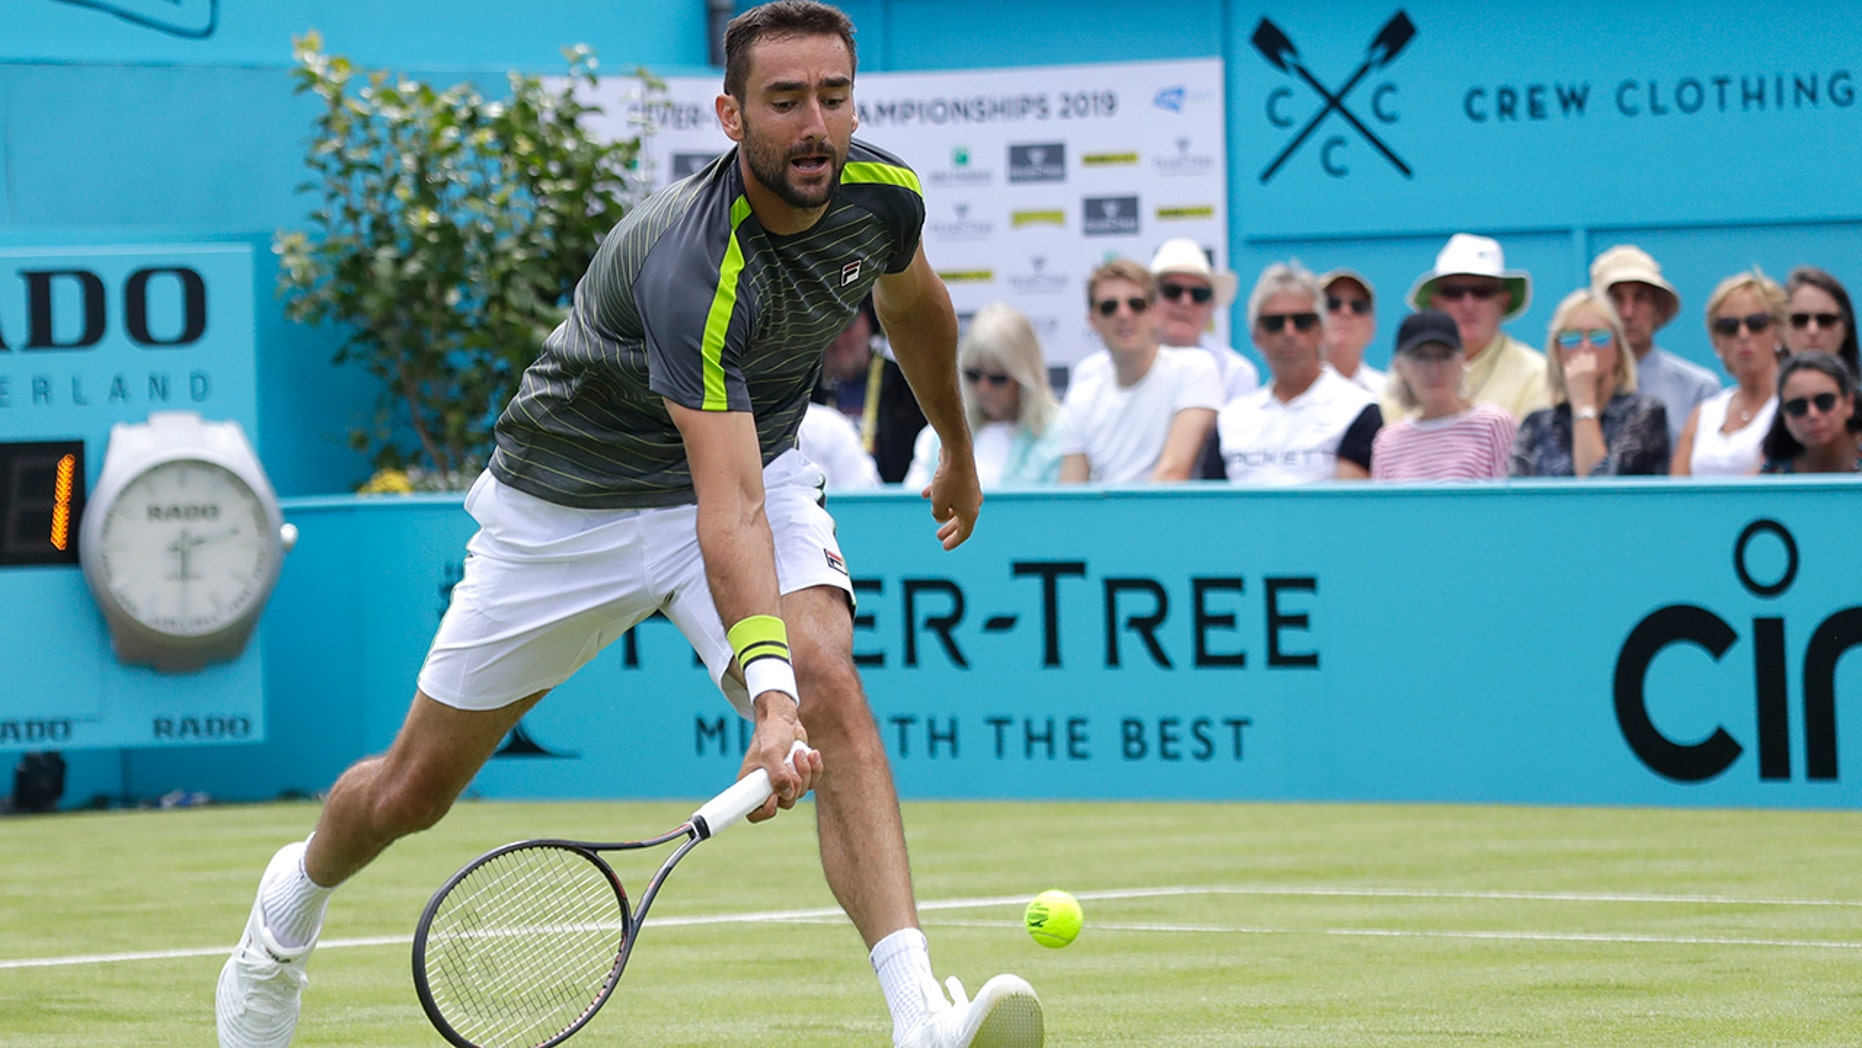 Marin Cilic of Croatia plays a return to Cristian Garin of Chile during their singles match at the Queens Club tennis tournment in London, Monday, June 17, 2019. (AP Photo/Kirsty Wigglesworth)